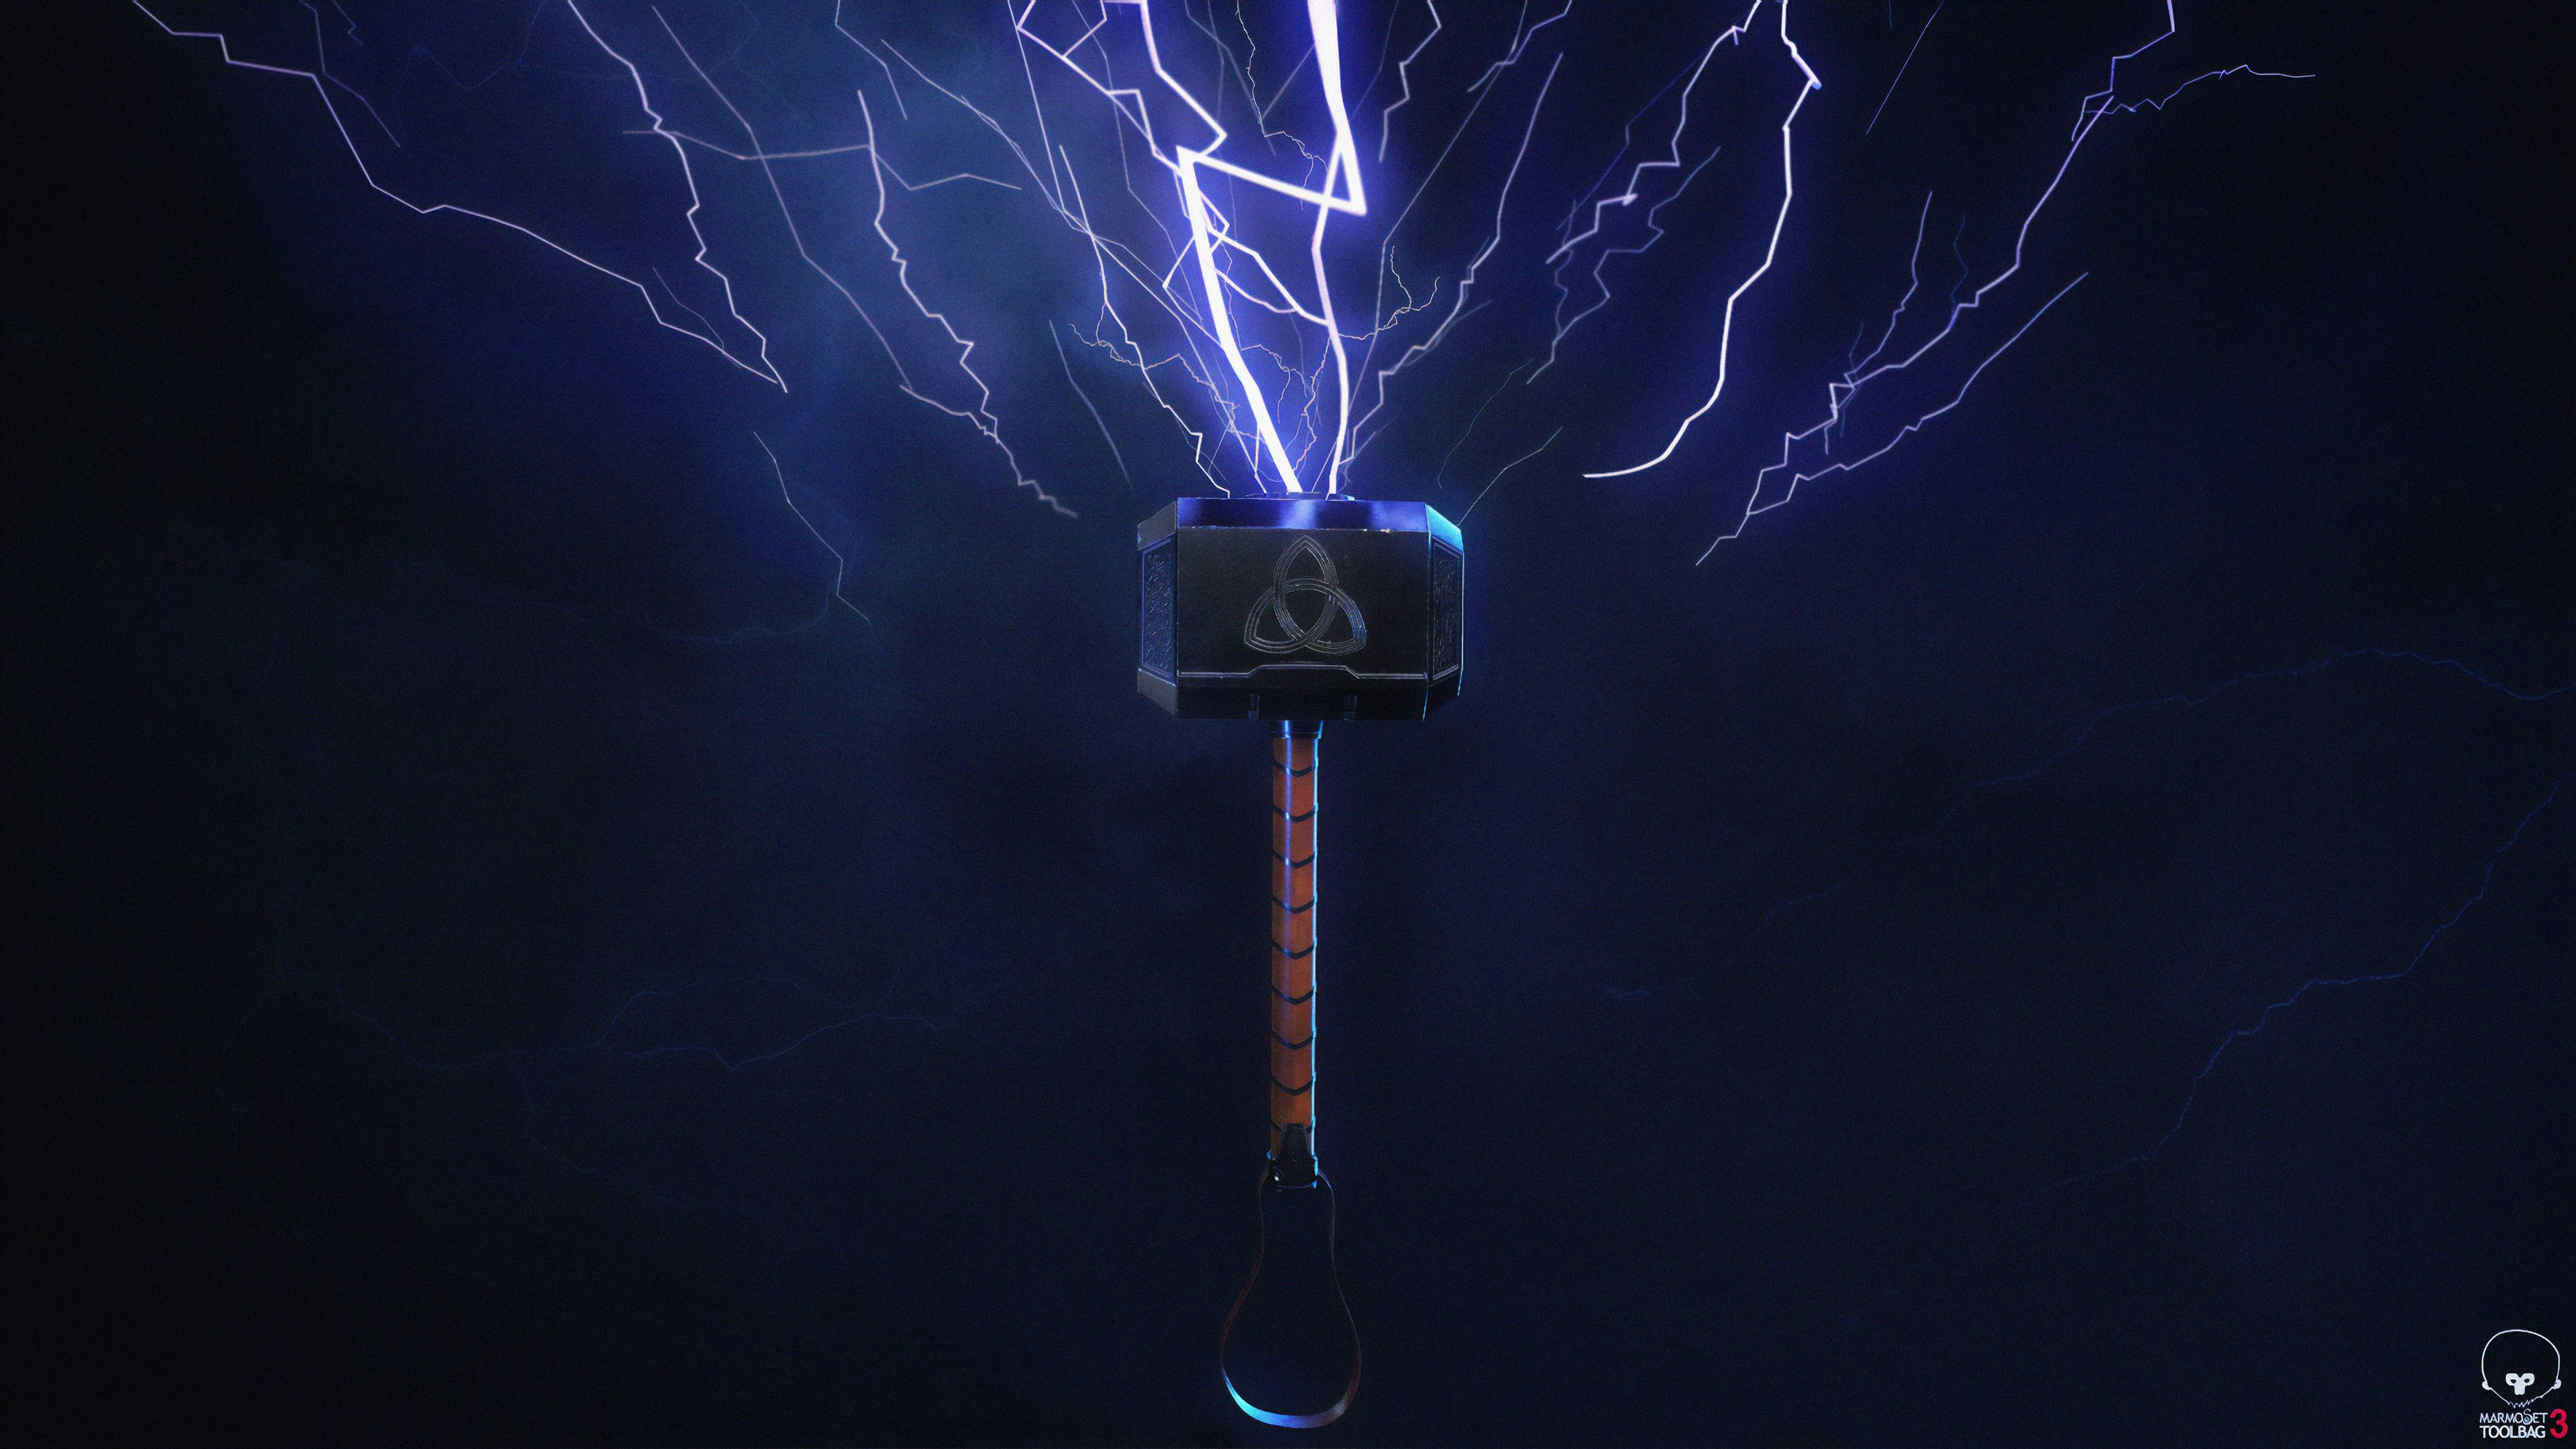 Thor Hammer New Thor Wallpapers Superheroes Wallpapers Hd Wallpapers Digital Art Wallpapers Artwork Wallpape Thor Wallpaper Thors Hammer Avengers Wallpaper